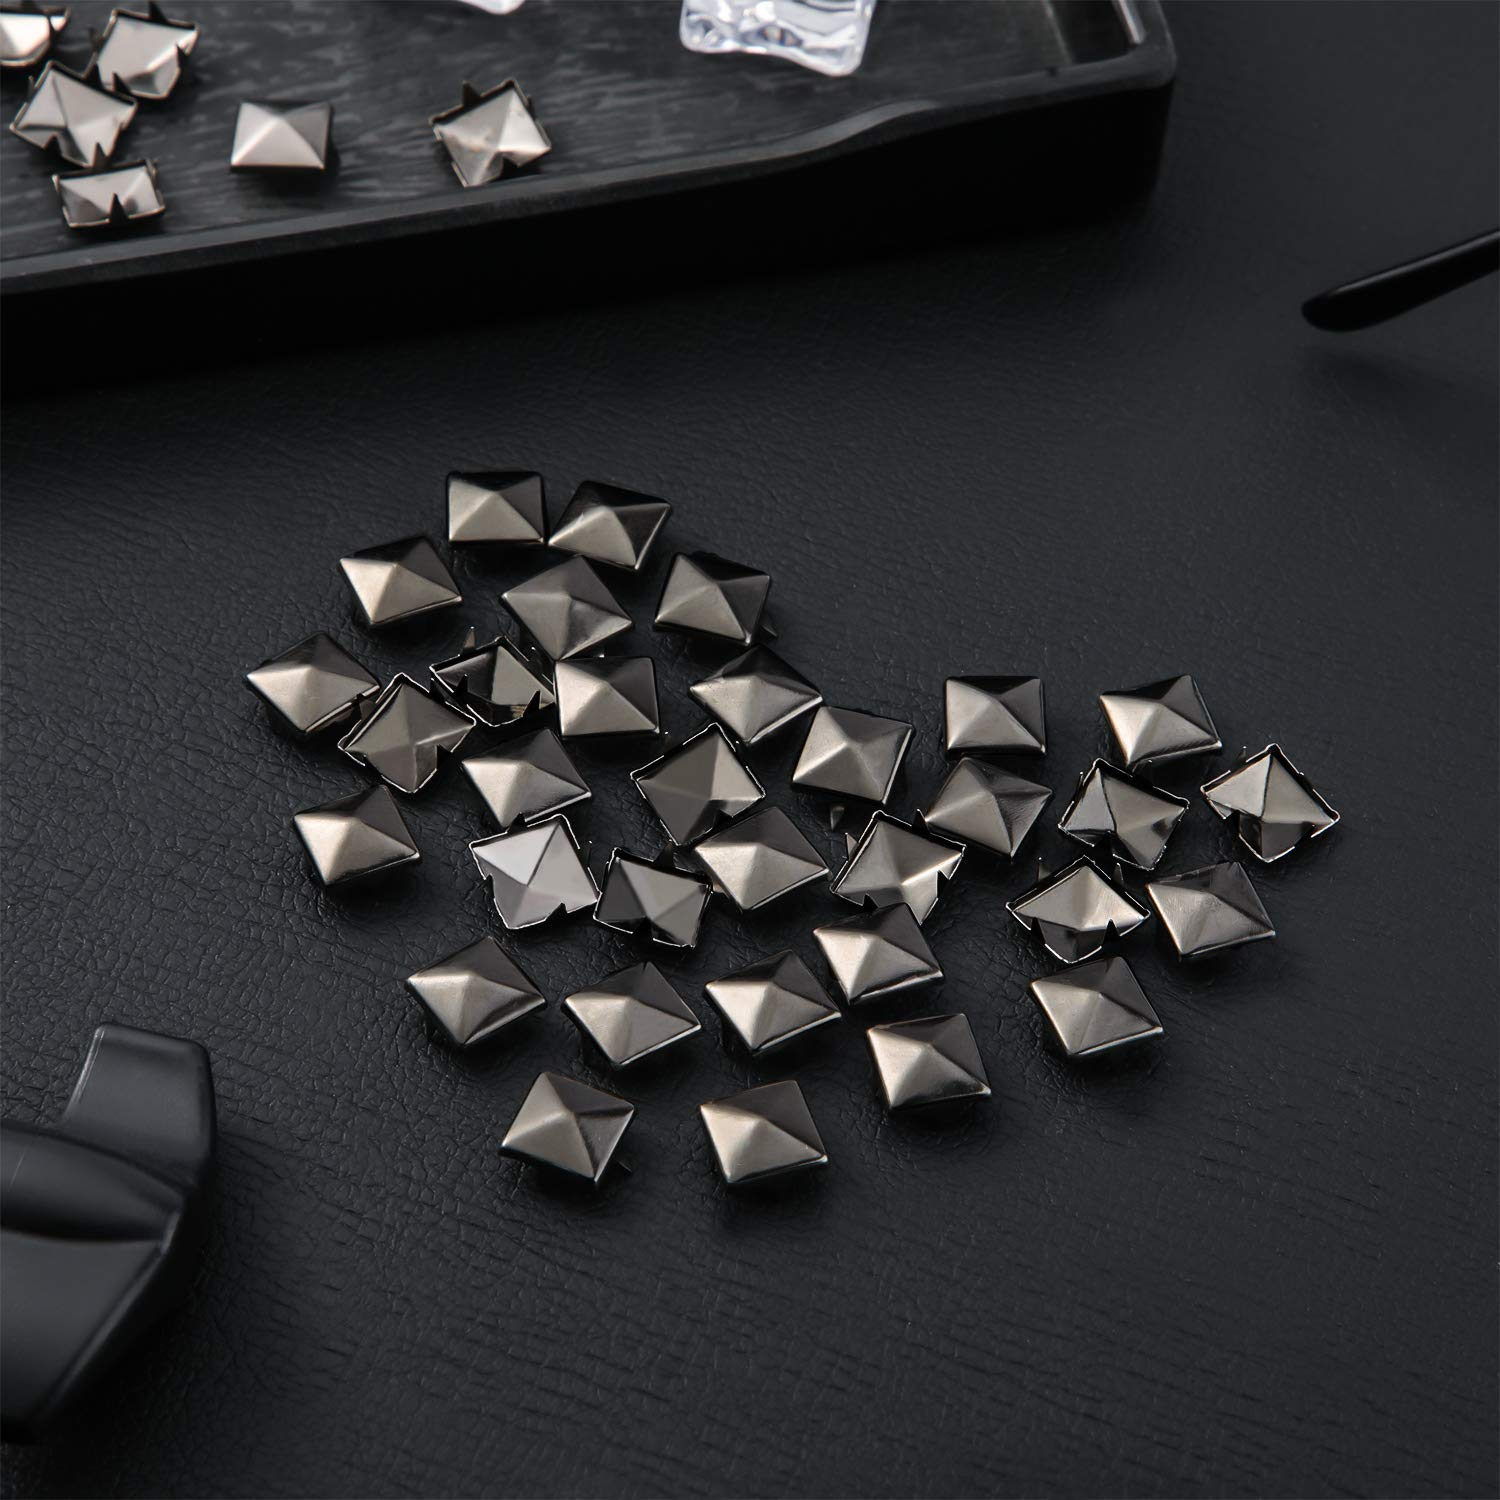 Black 400 Pieces 10 mm Four-Jaw Square Rivets Bag Leather Clothing Shoes Rivet Handicraft DIY Spikes Spots Studs Accessories with Straight Tipped Scratch Awl Craft Tool